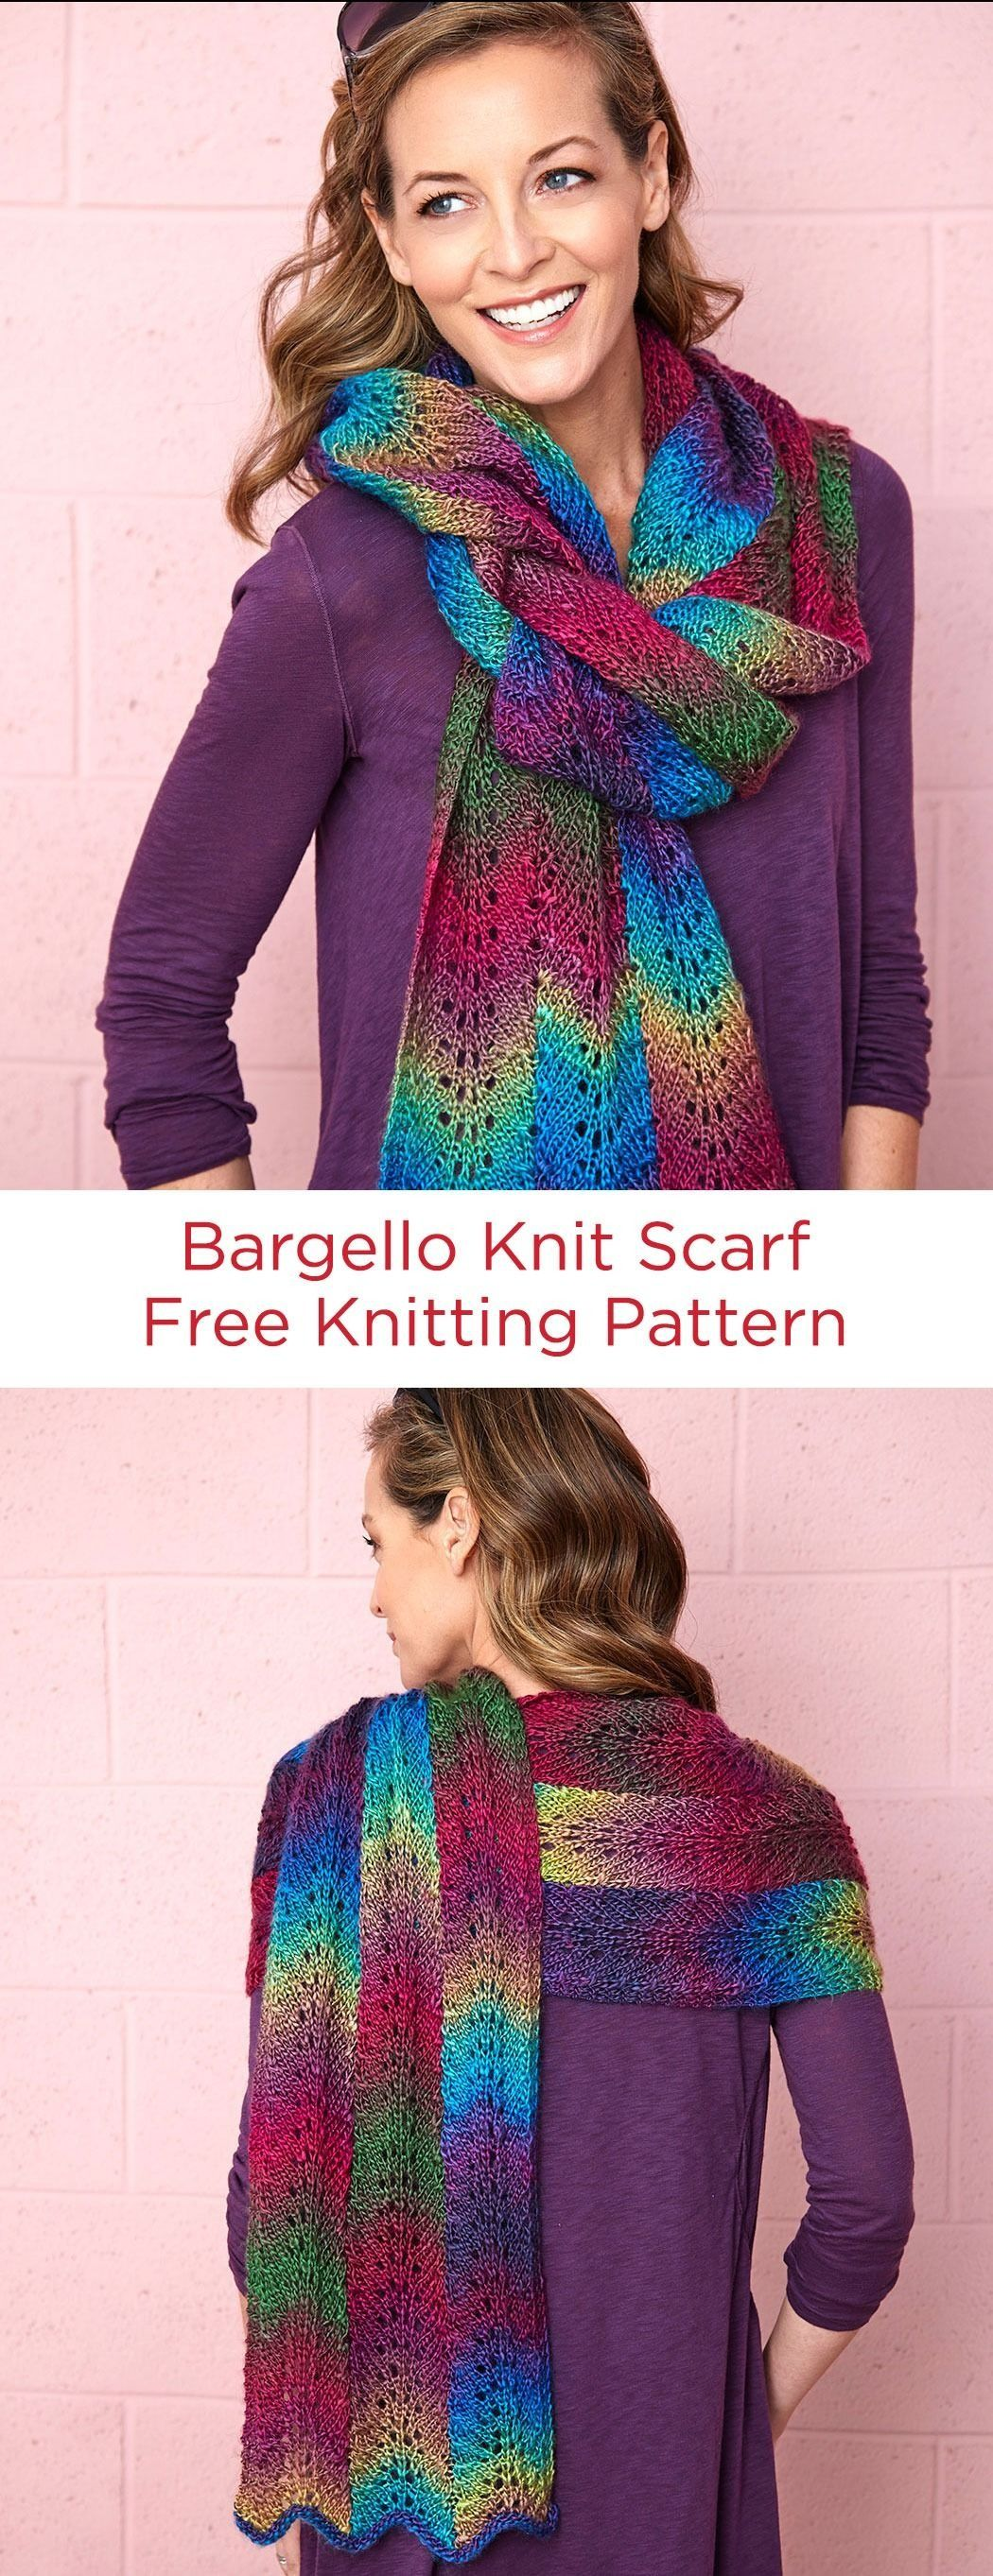 Bargello Knit Scarf Free Knitting Pattern in Red Heart ...